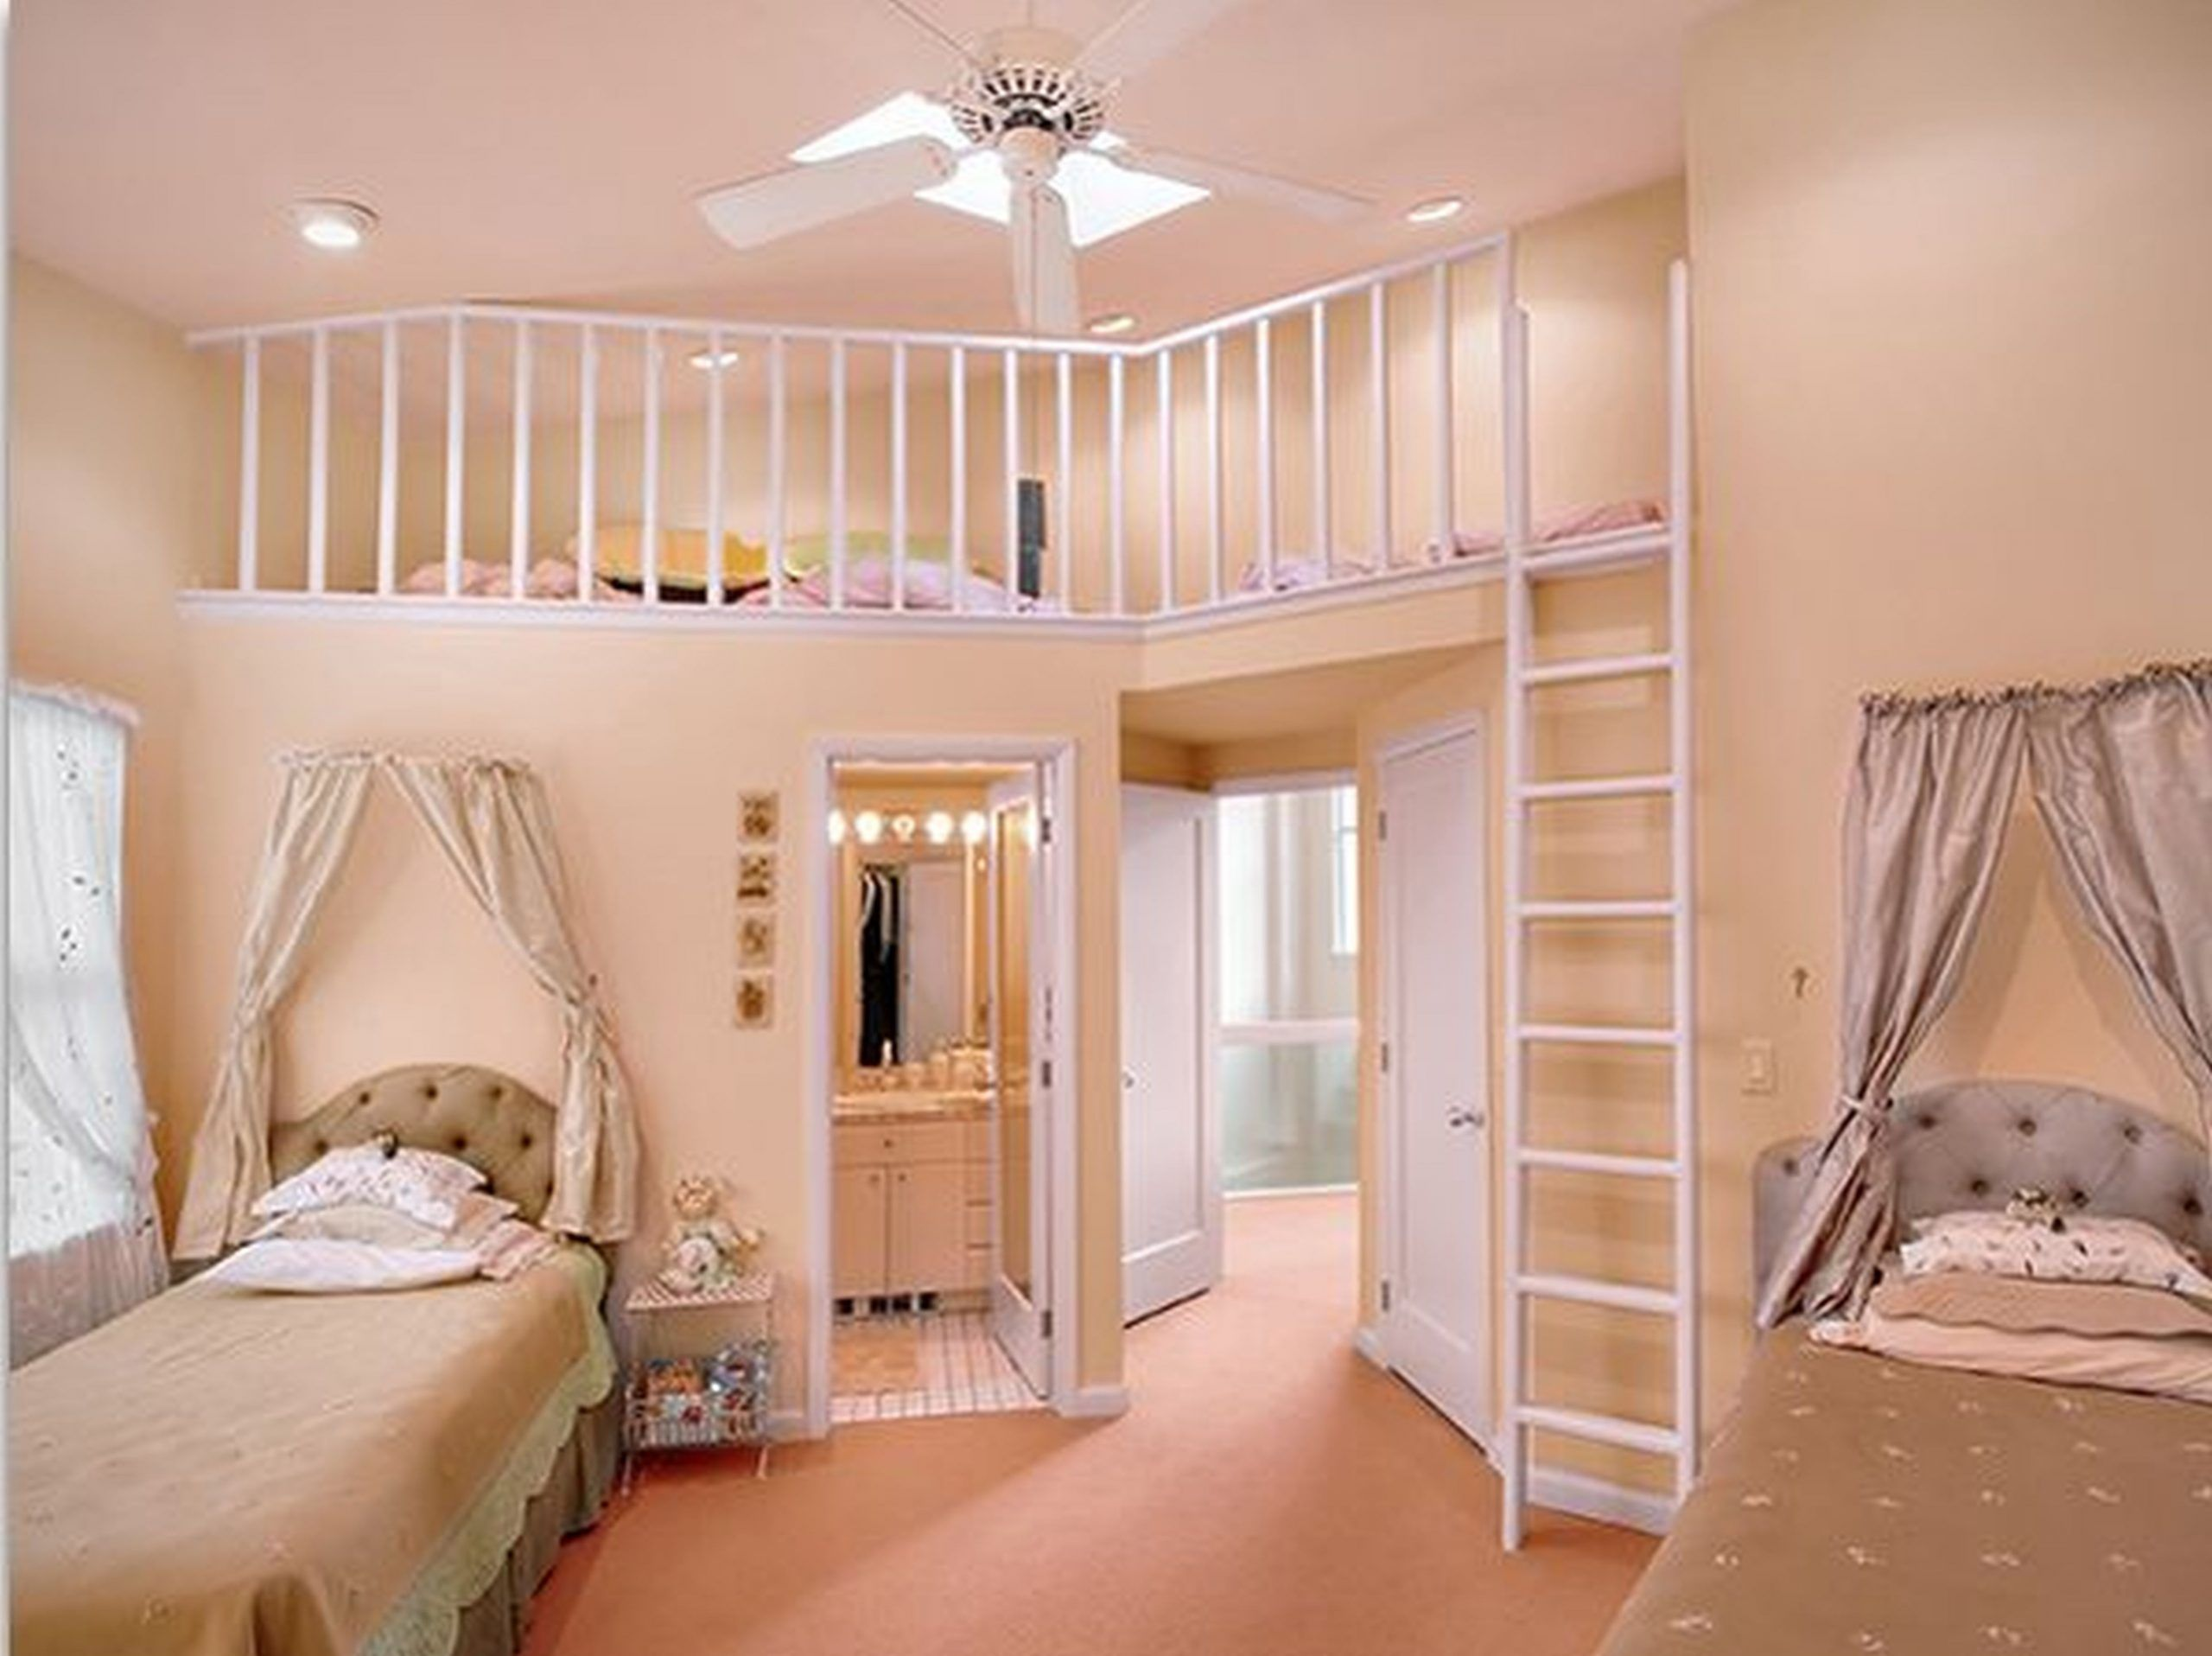 Bunk Bed For Sale By Owner In 2020 Small Room Bedroom Loft Bed Kids Bedroom Sets